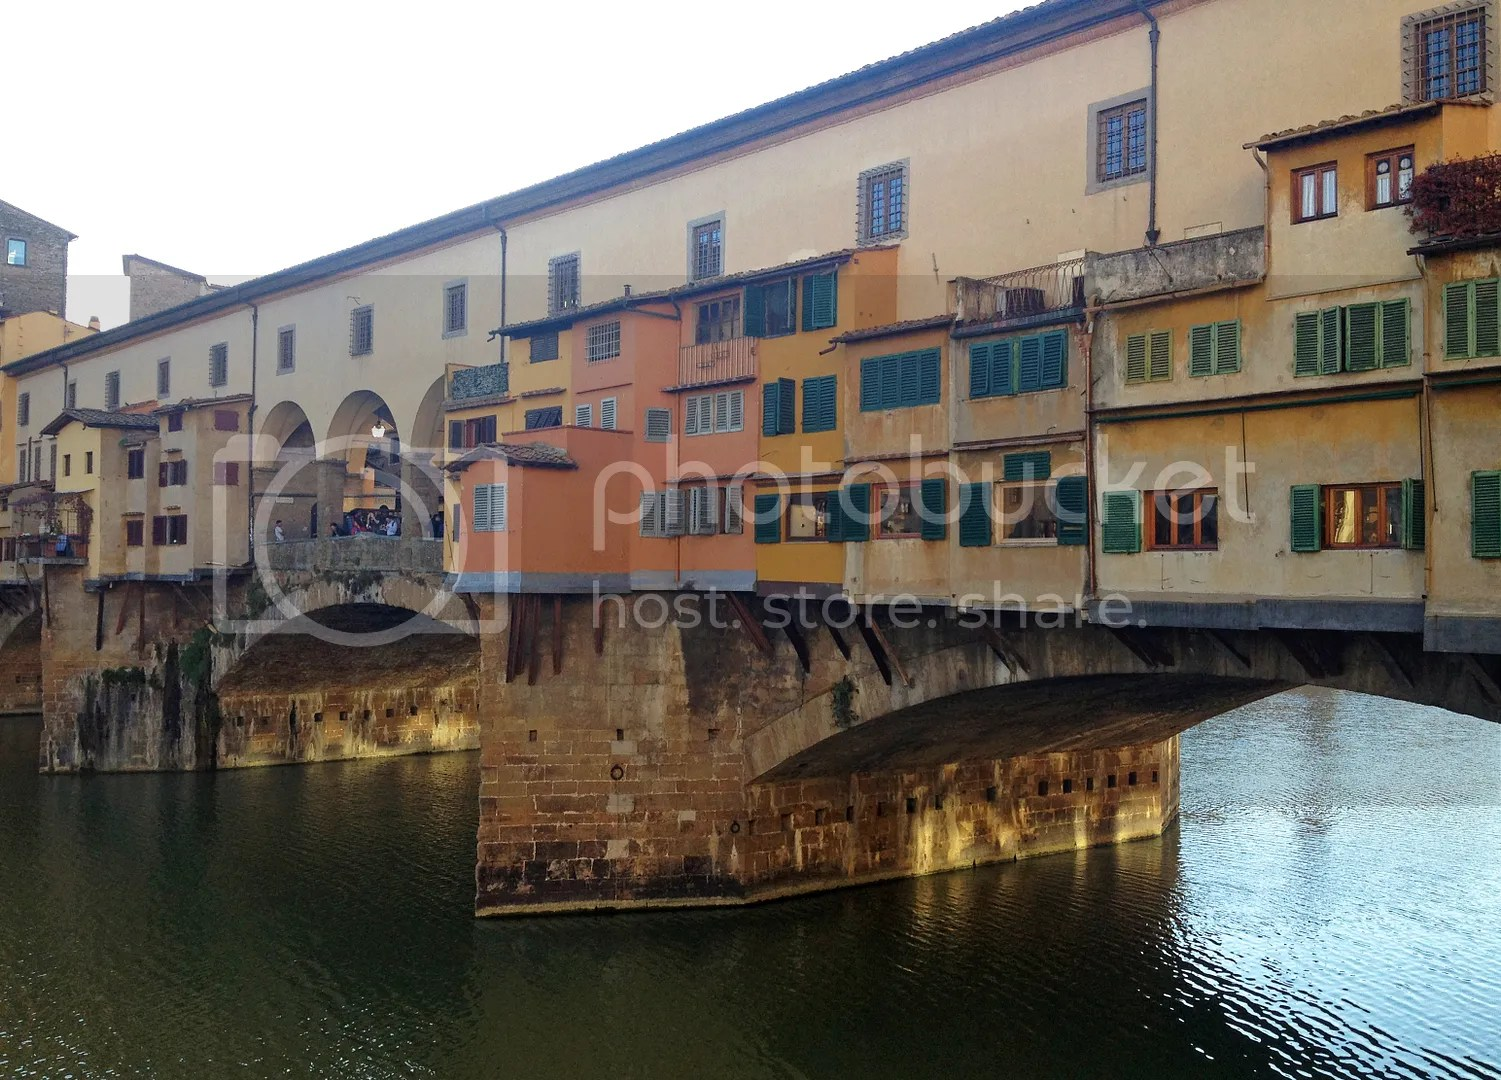 photo Florence-Pont_zpschwkwwic.jpg